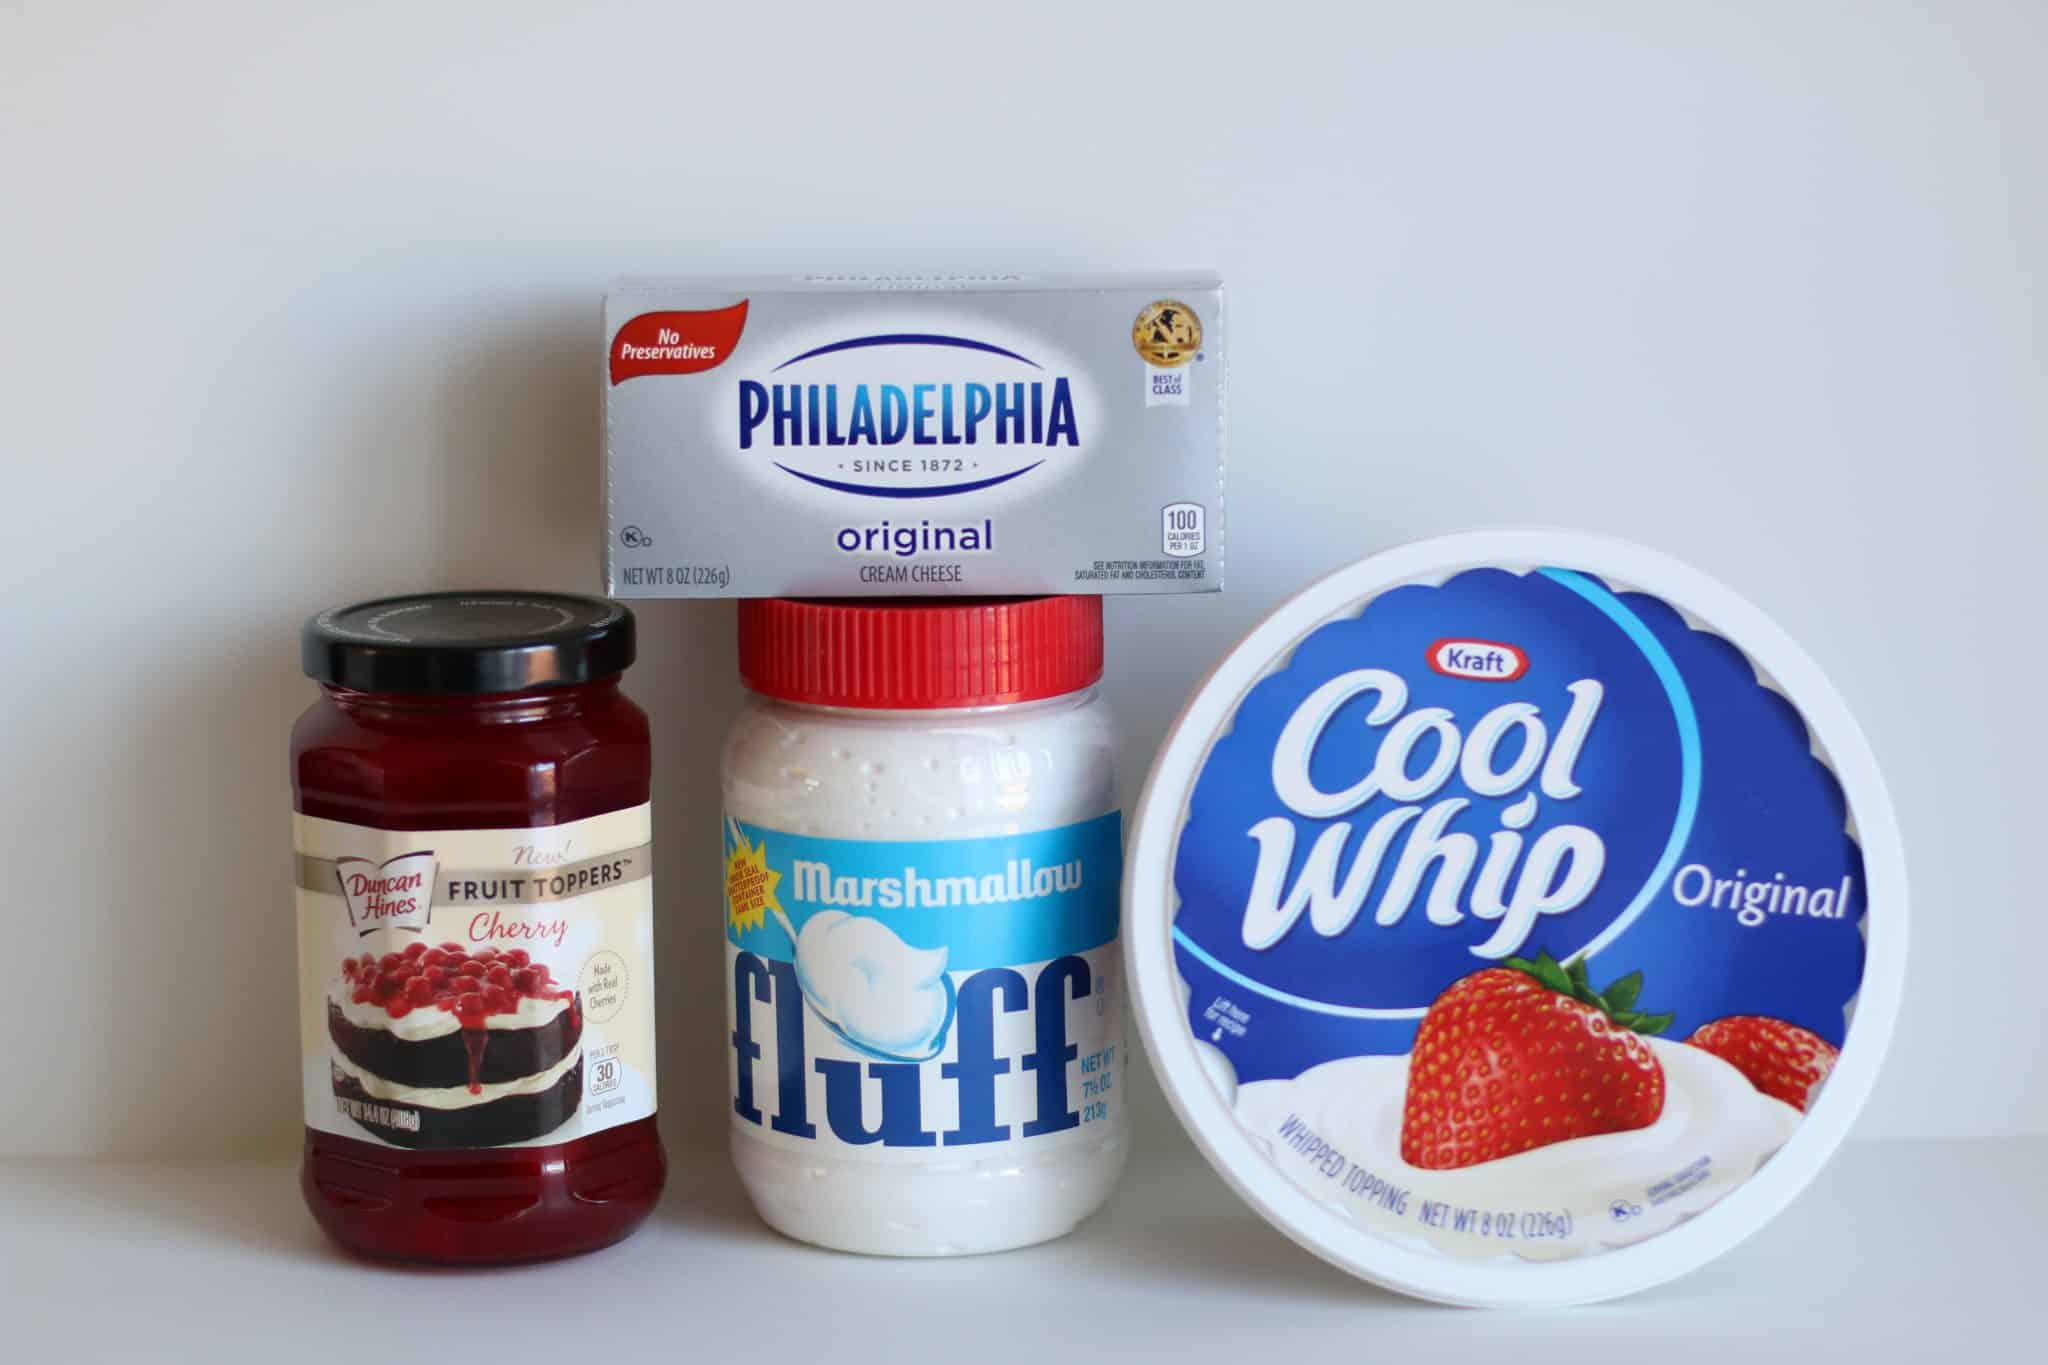 ingredients needed for cherry cheesecake dip: cream cheese, marshmallow fluff, Cool Whip and Cherry Pie Filling.